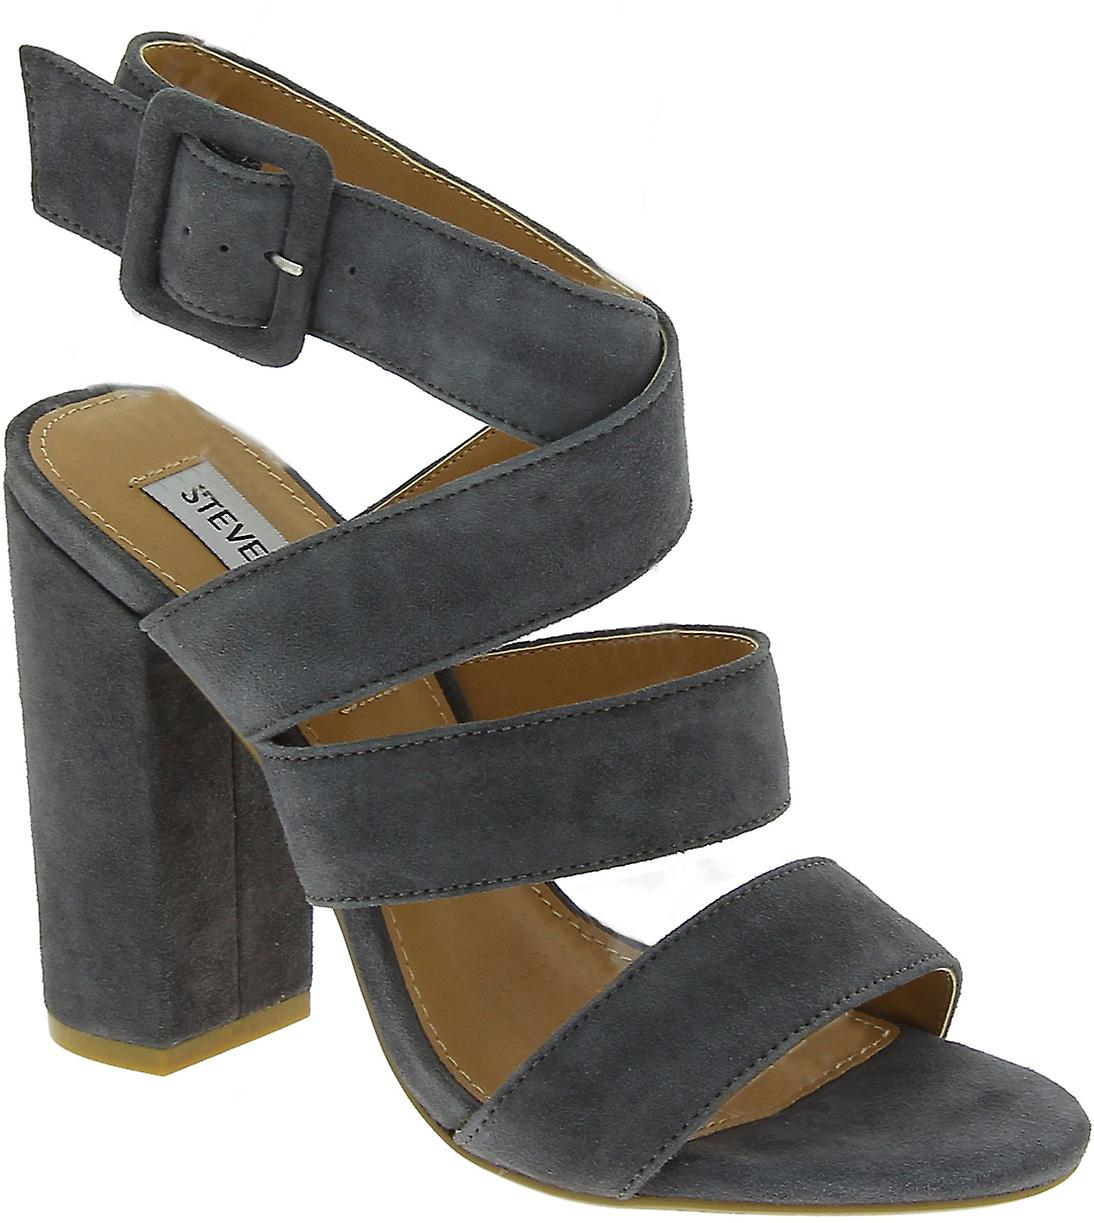 Steve Madden Women's high heels sandals with buckle in gray suede leather Qd68p